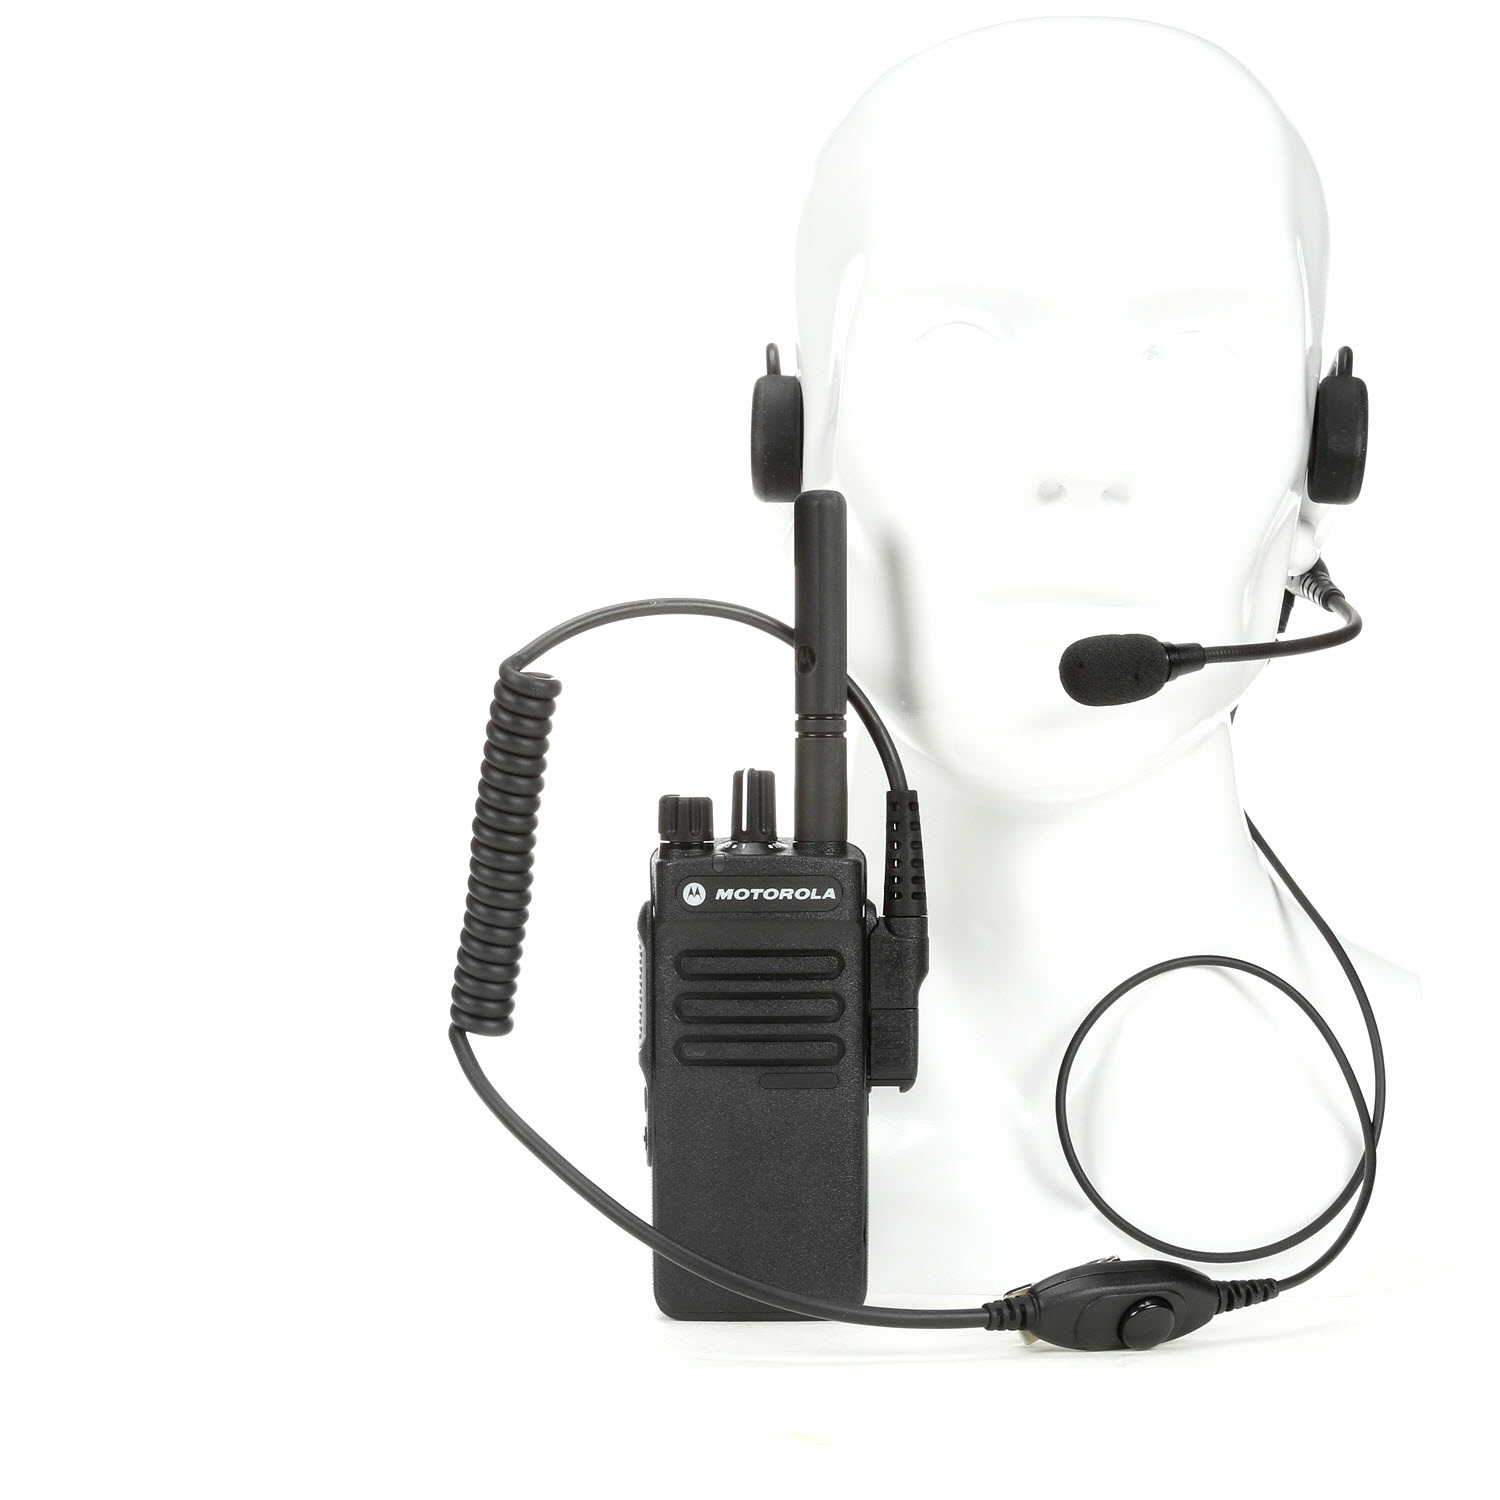 Xpr 3000e Series Motorola Solutions Belt Clip Ht Portable Two Way Radios